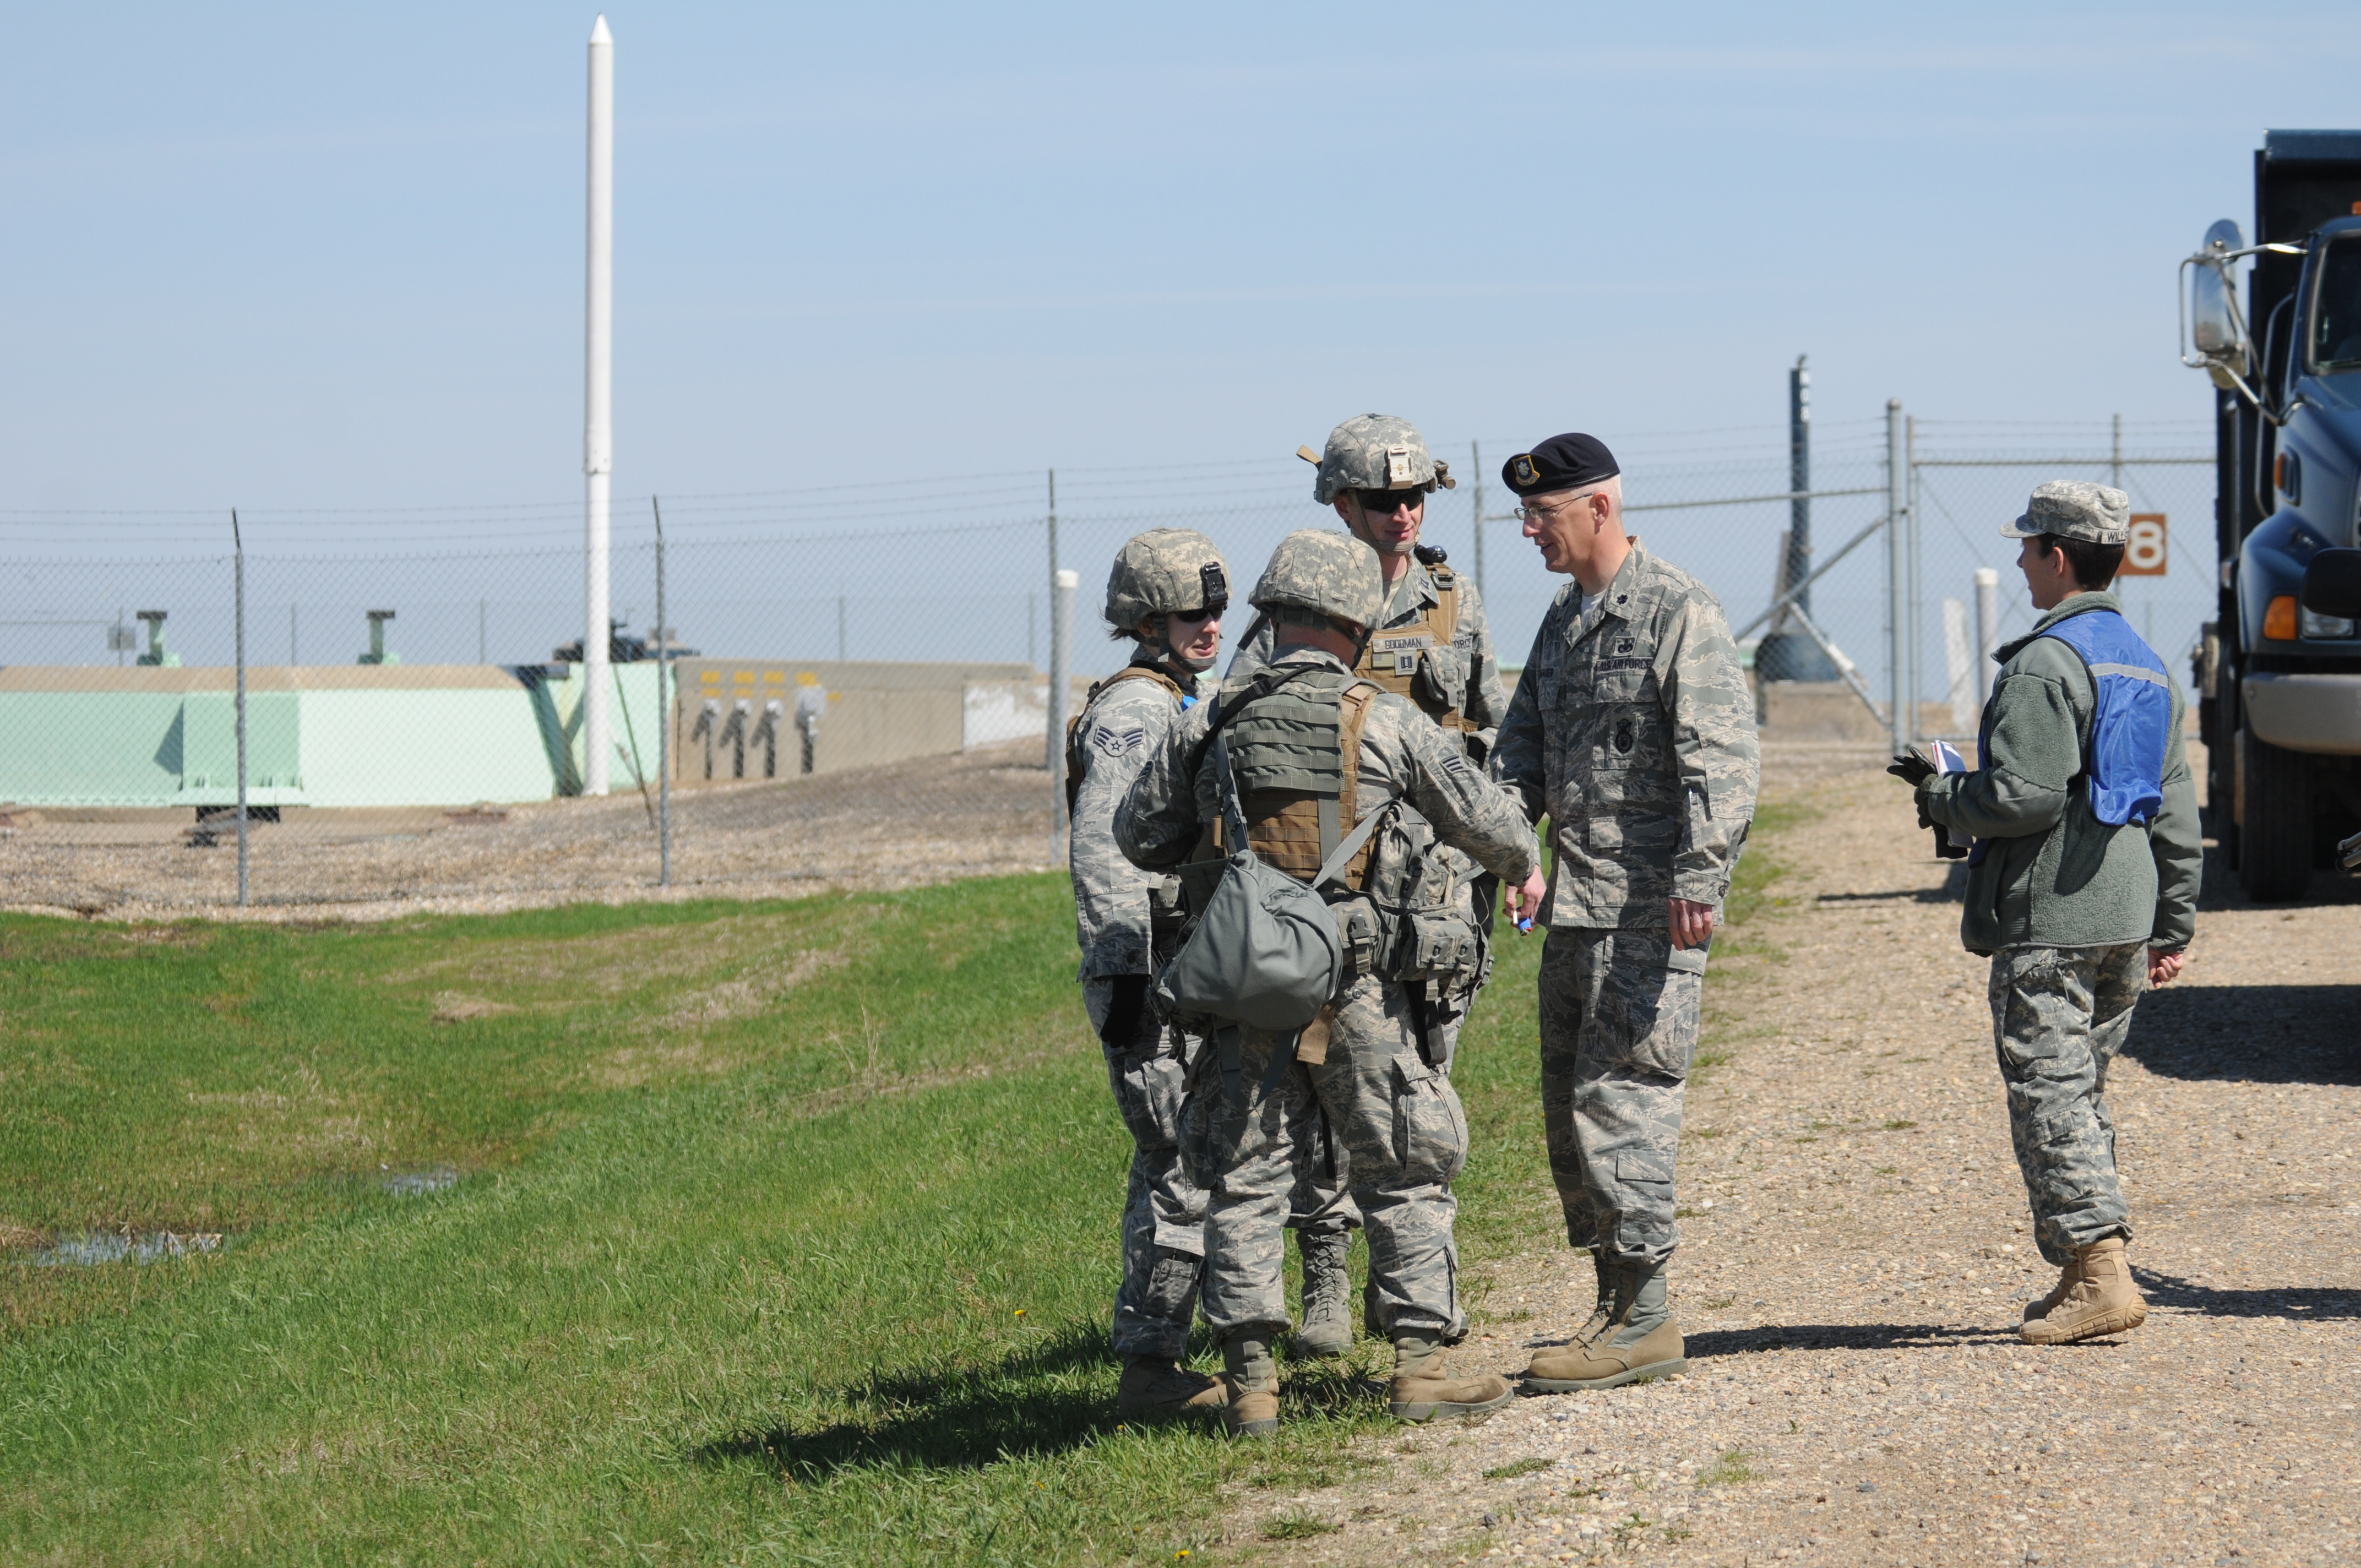 File:U.S. Air Force Lt. Col. Tad Schauer, second from ...